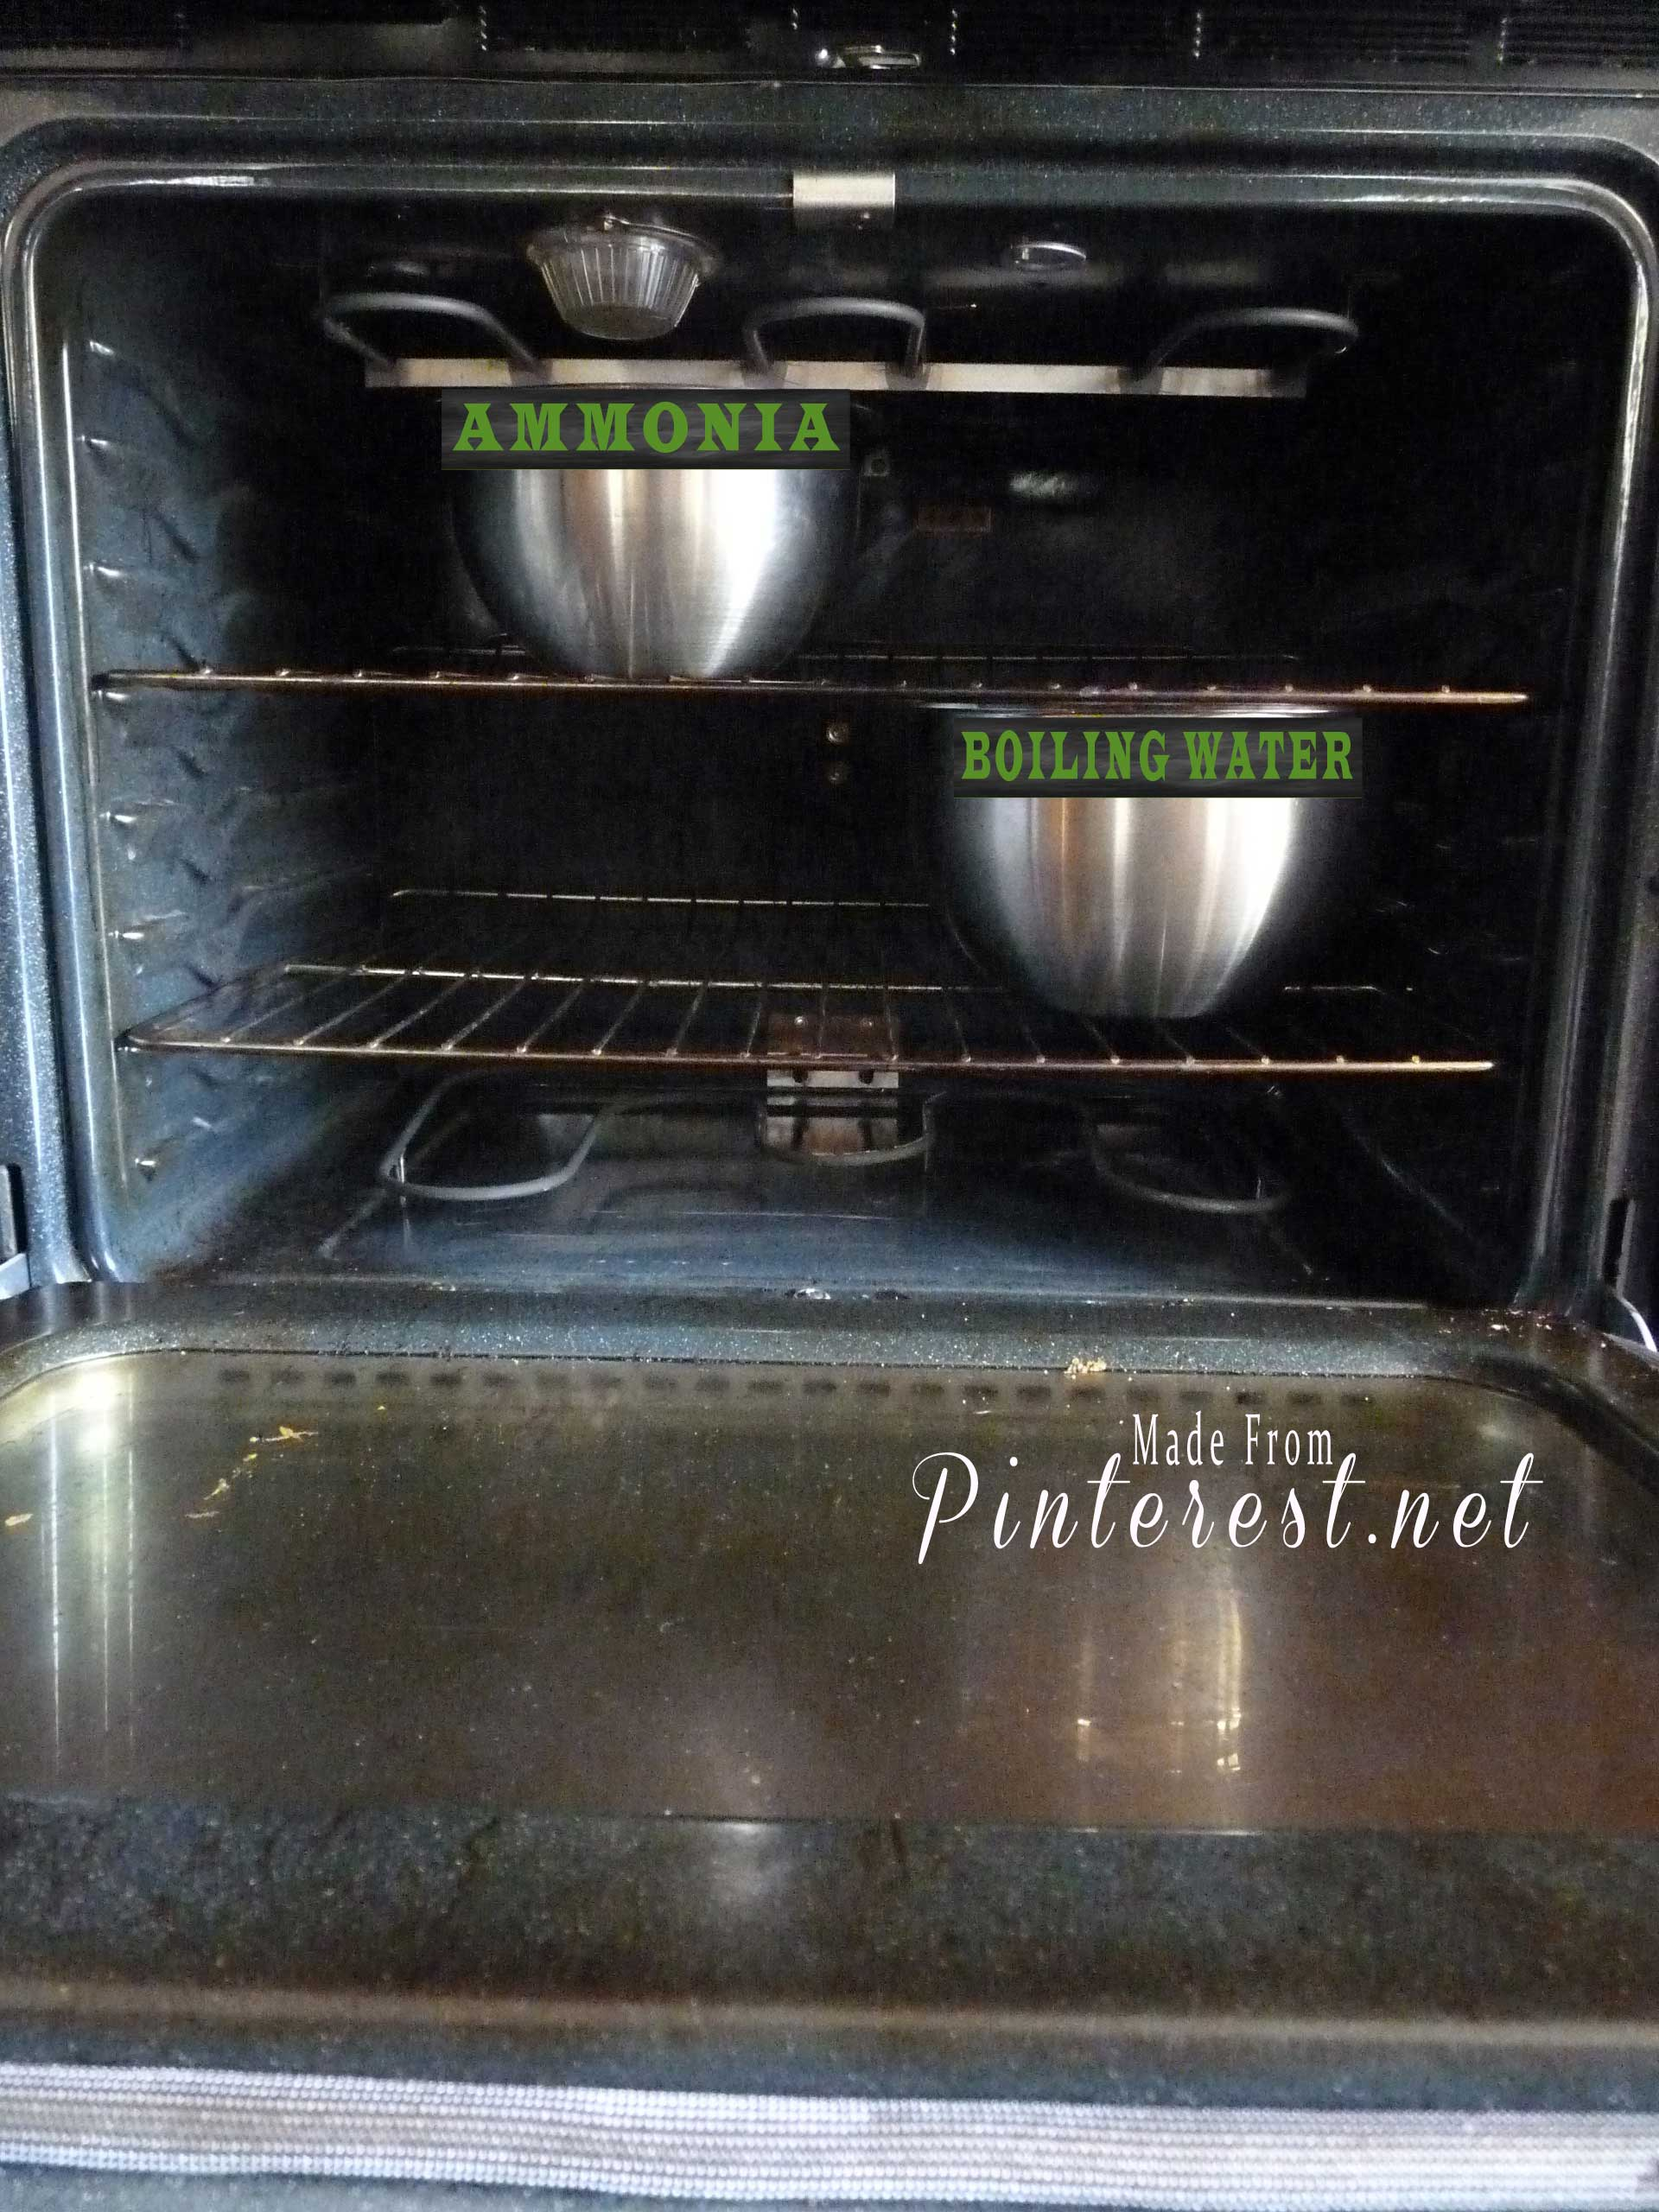 How to clean an oven with ammonia